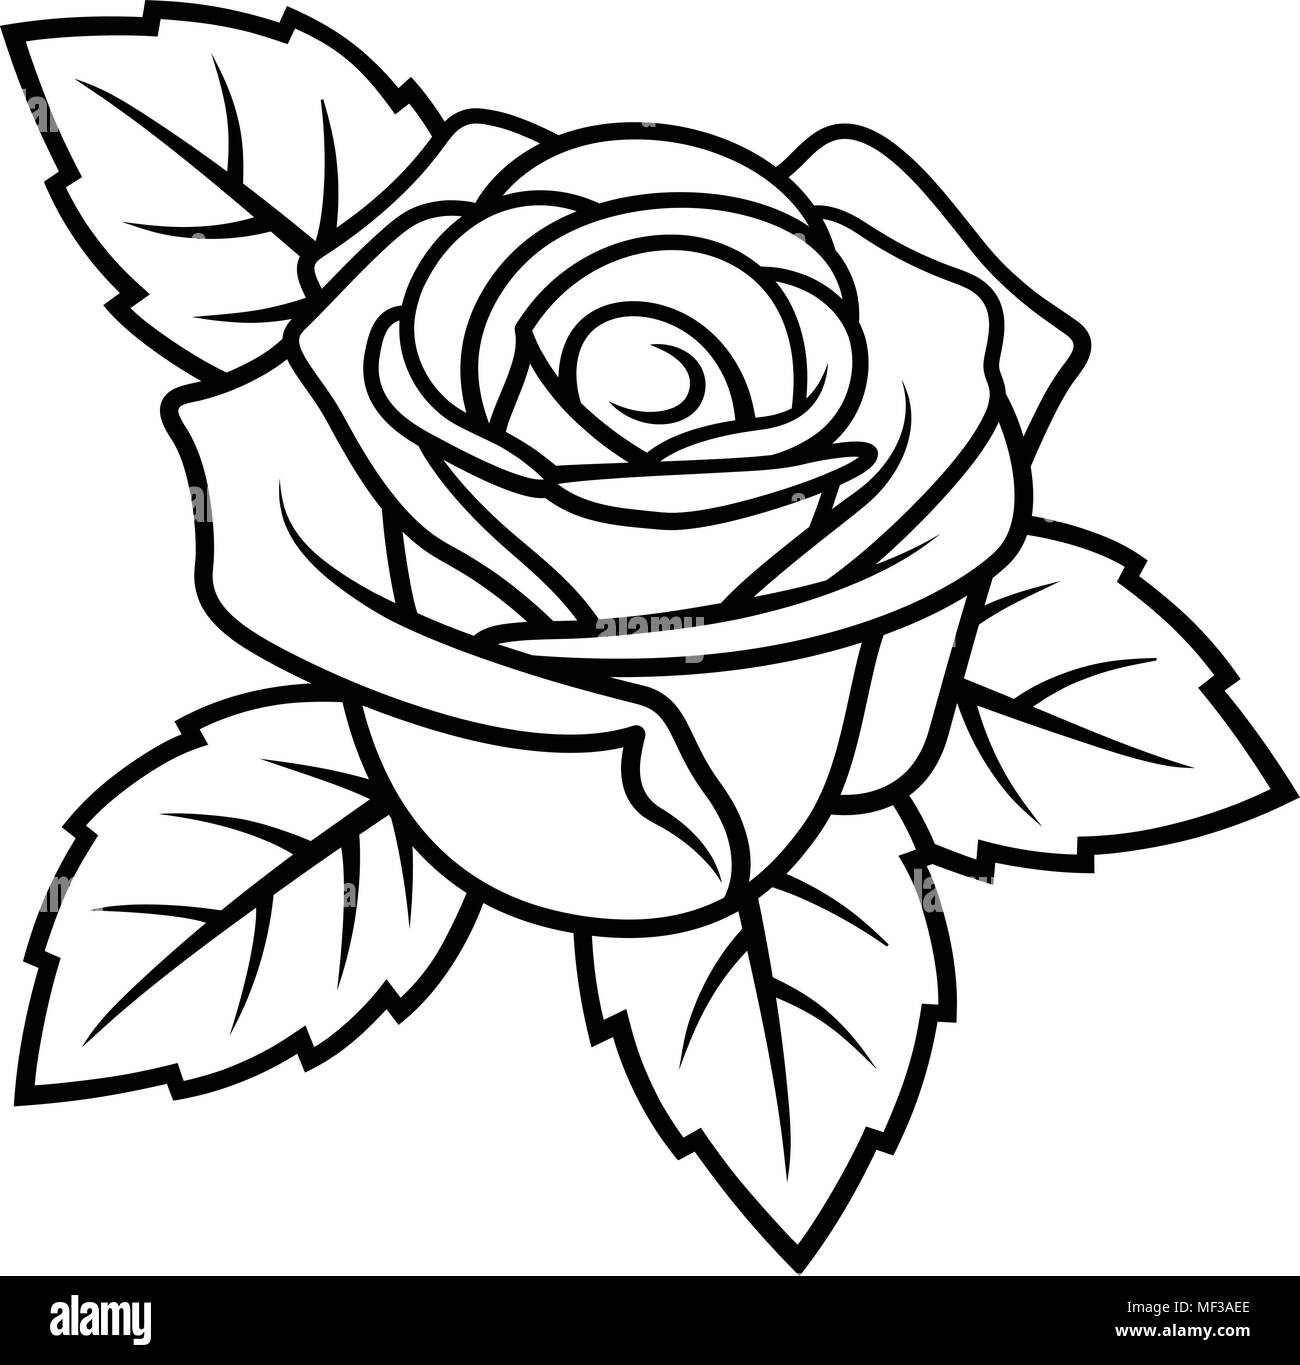 Tattoo Designs White Background: Sketch Of Rose Isolated On White Background. Use For